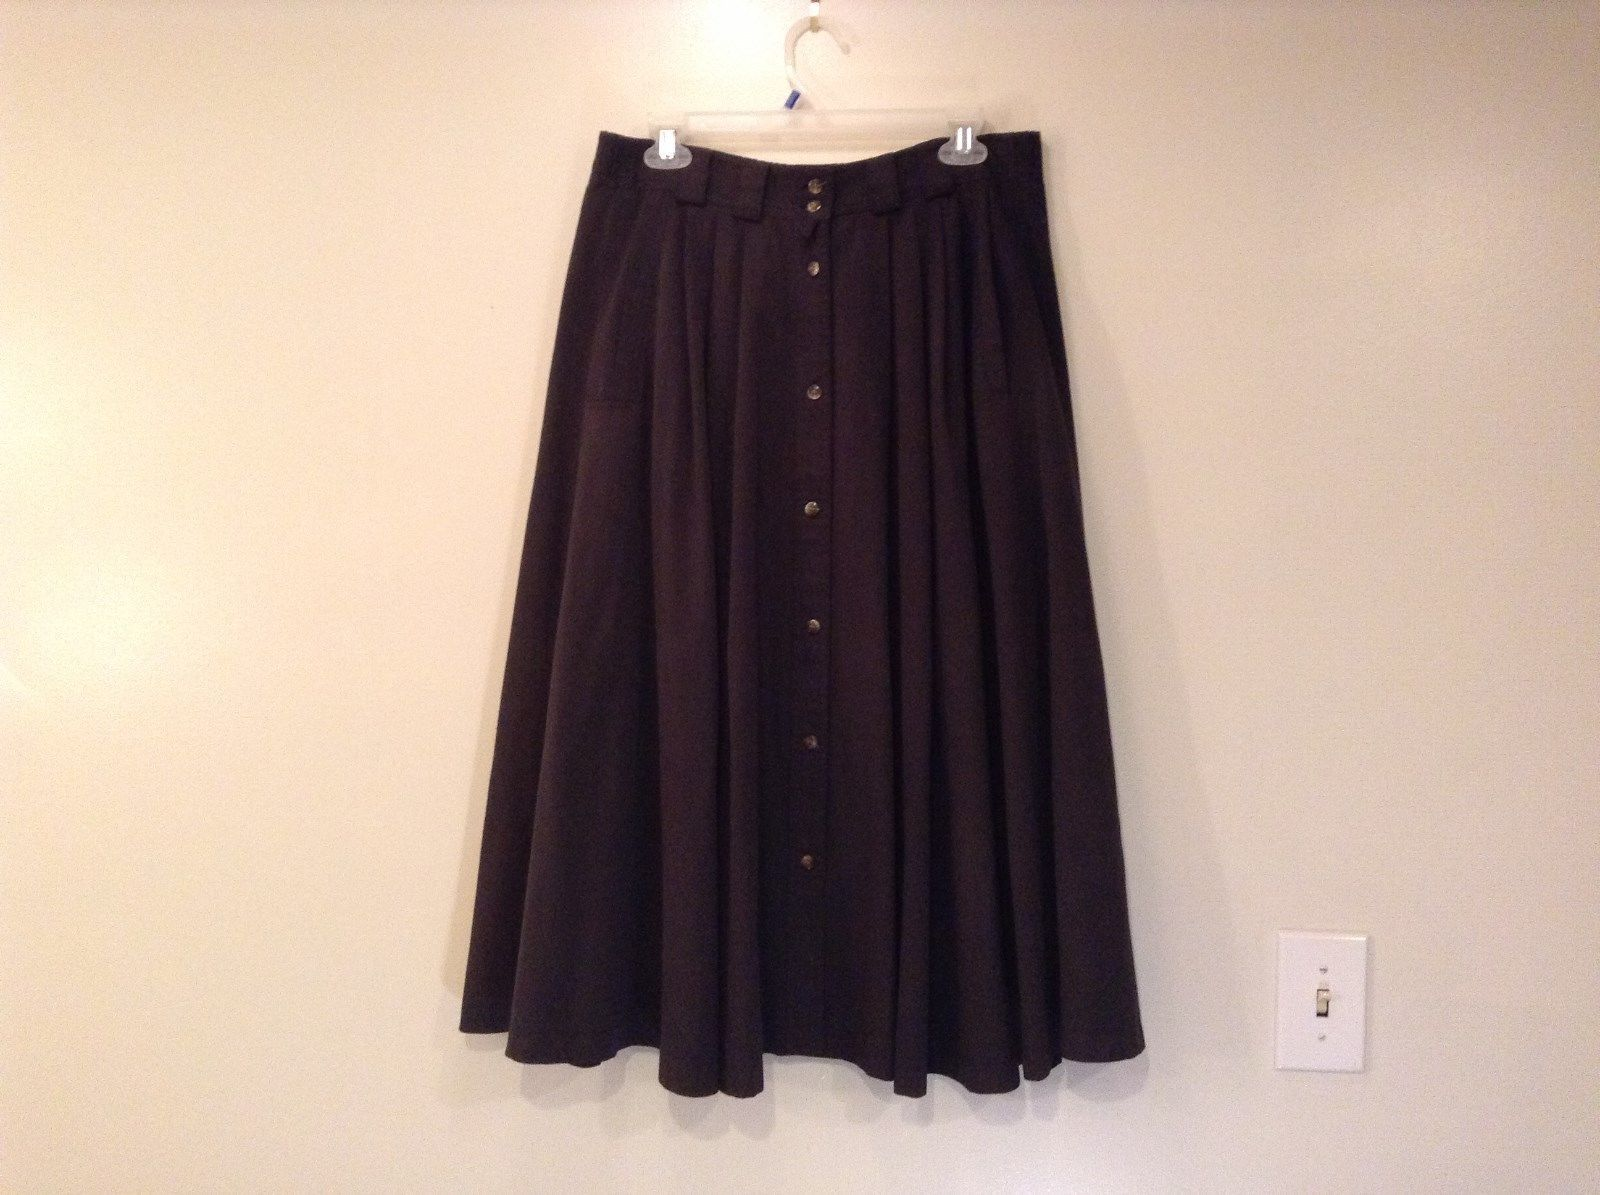 Jacobsons Dark Gray Black Skirt Pleats on Front Buttons on Front Size 10